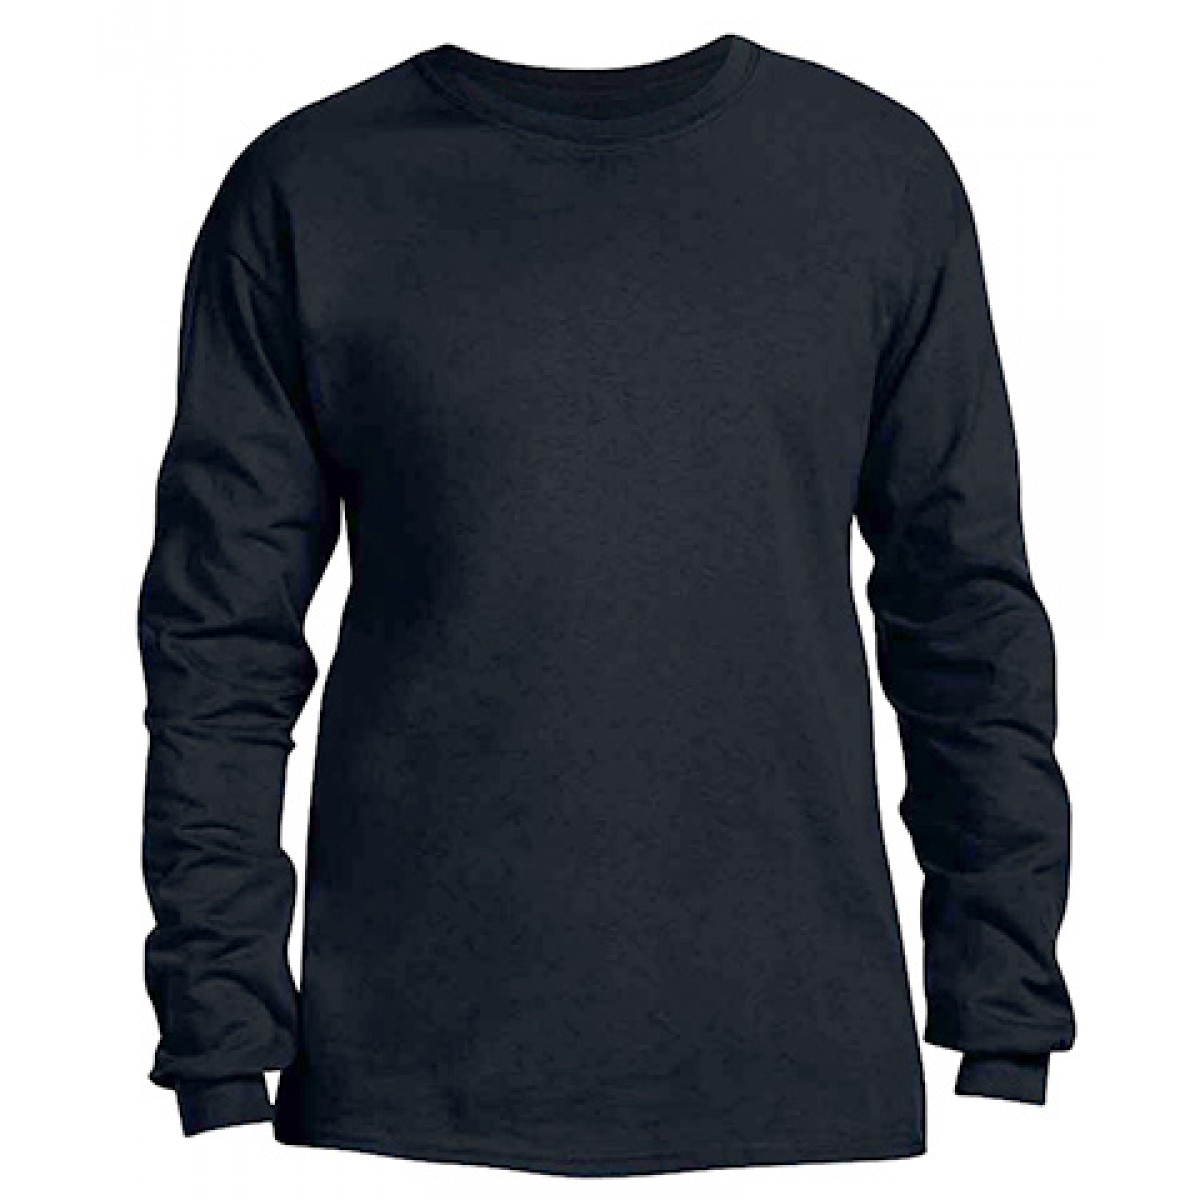 Heavy Cotton Long-Sleeve Adidas Shirt-Black-XL